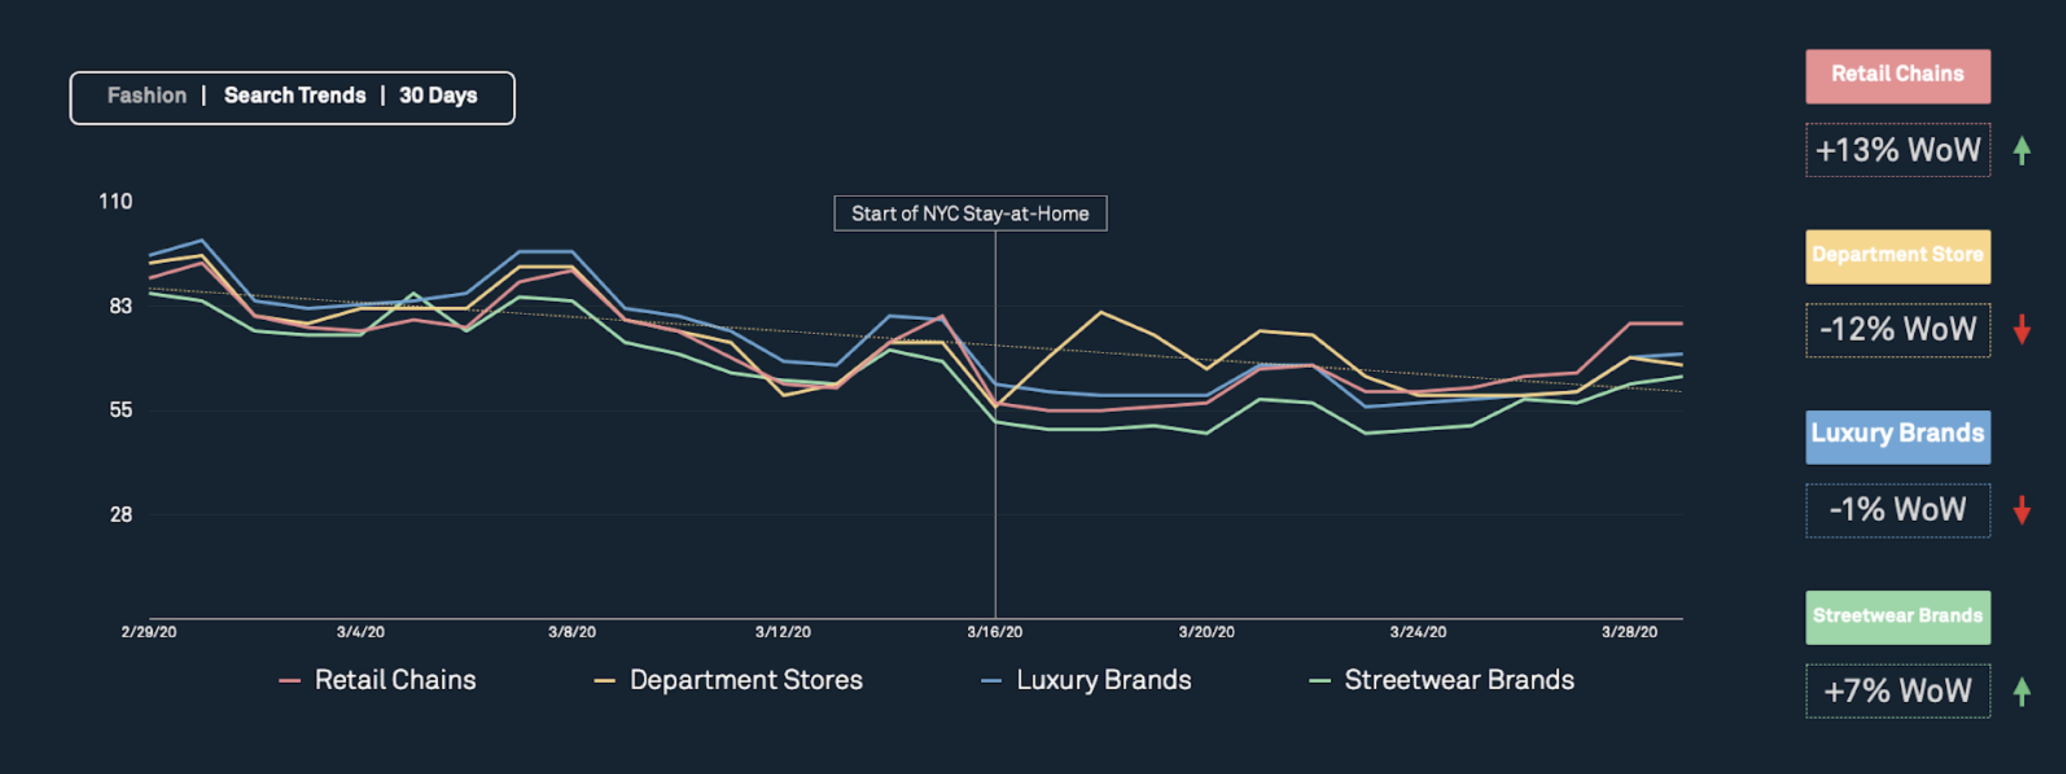 Whispr Group Online Conversations Fashion & Beauty Insights - Search Trends